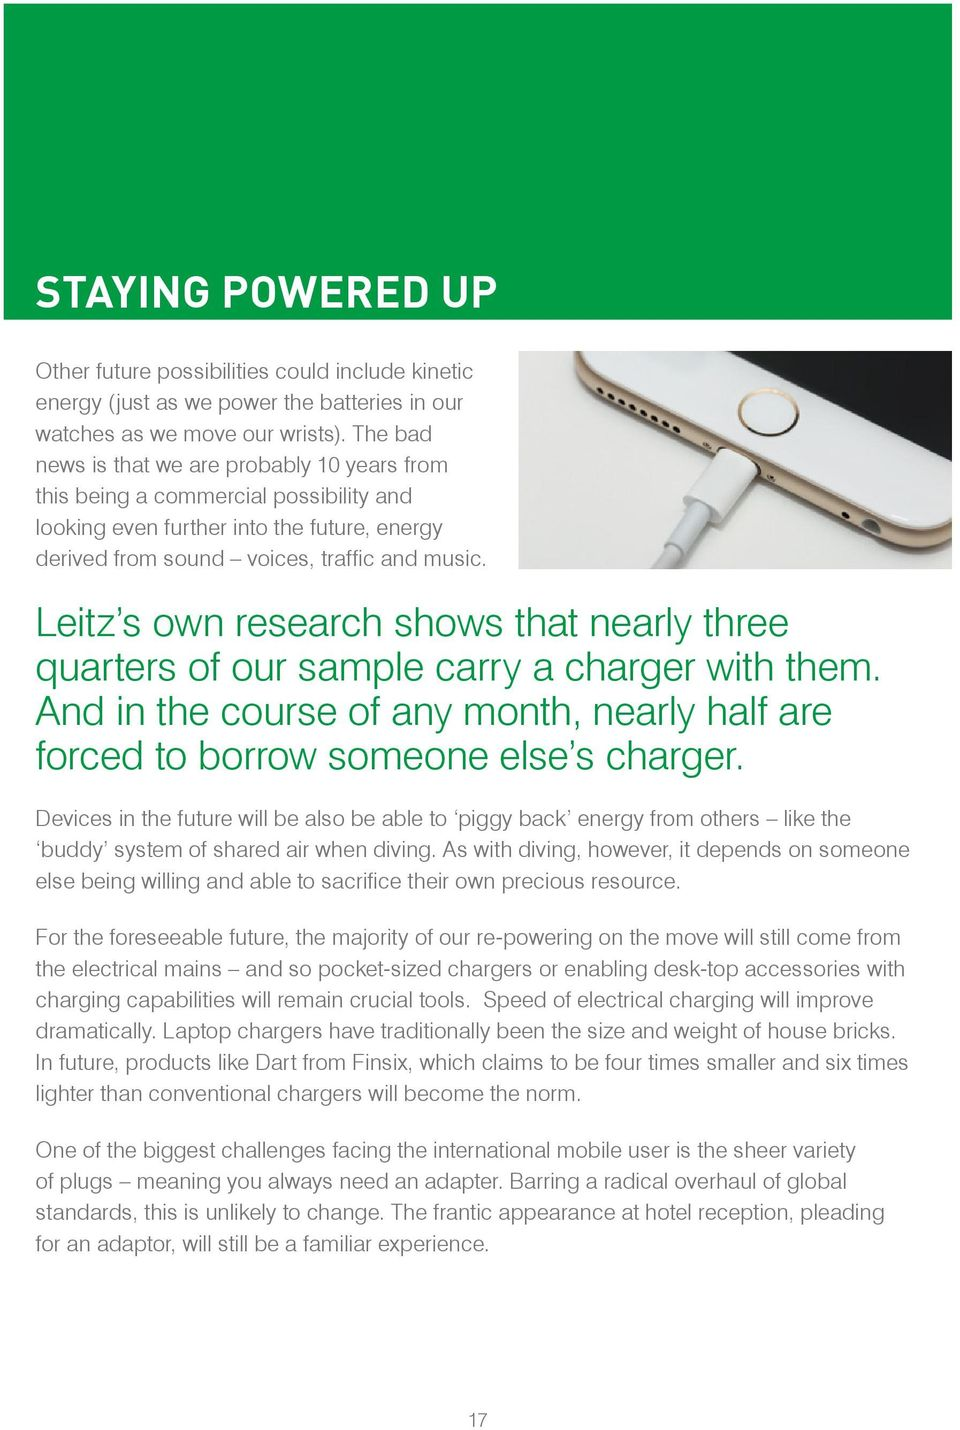 Leitz s own research shows that nearly three quarters of our sample carry a charger with them. And in the course of any month, nearly half are forced to borrow someone else s charger.